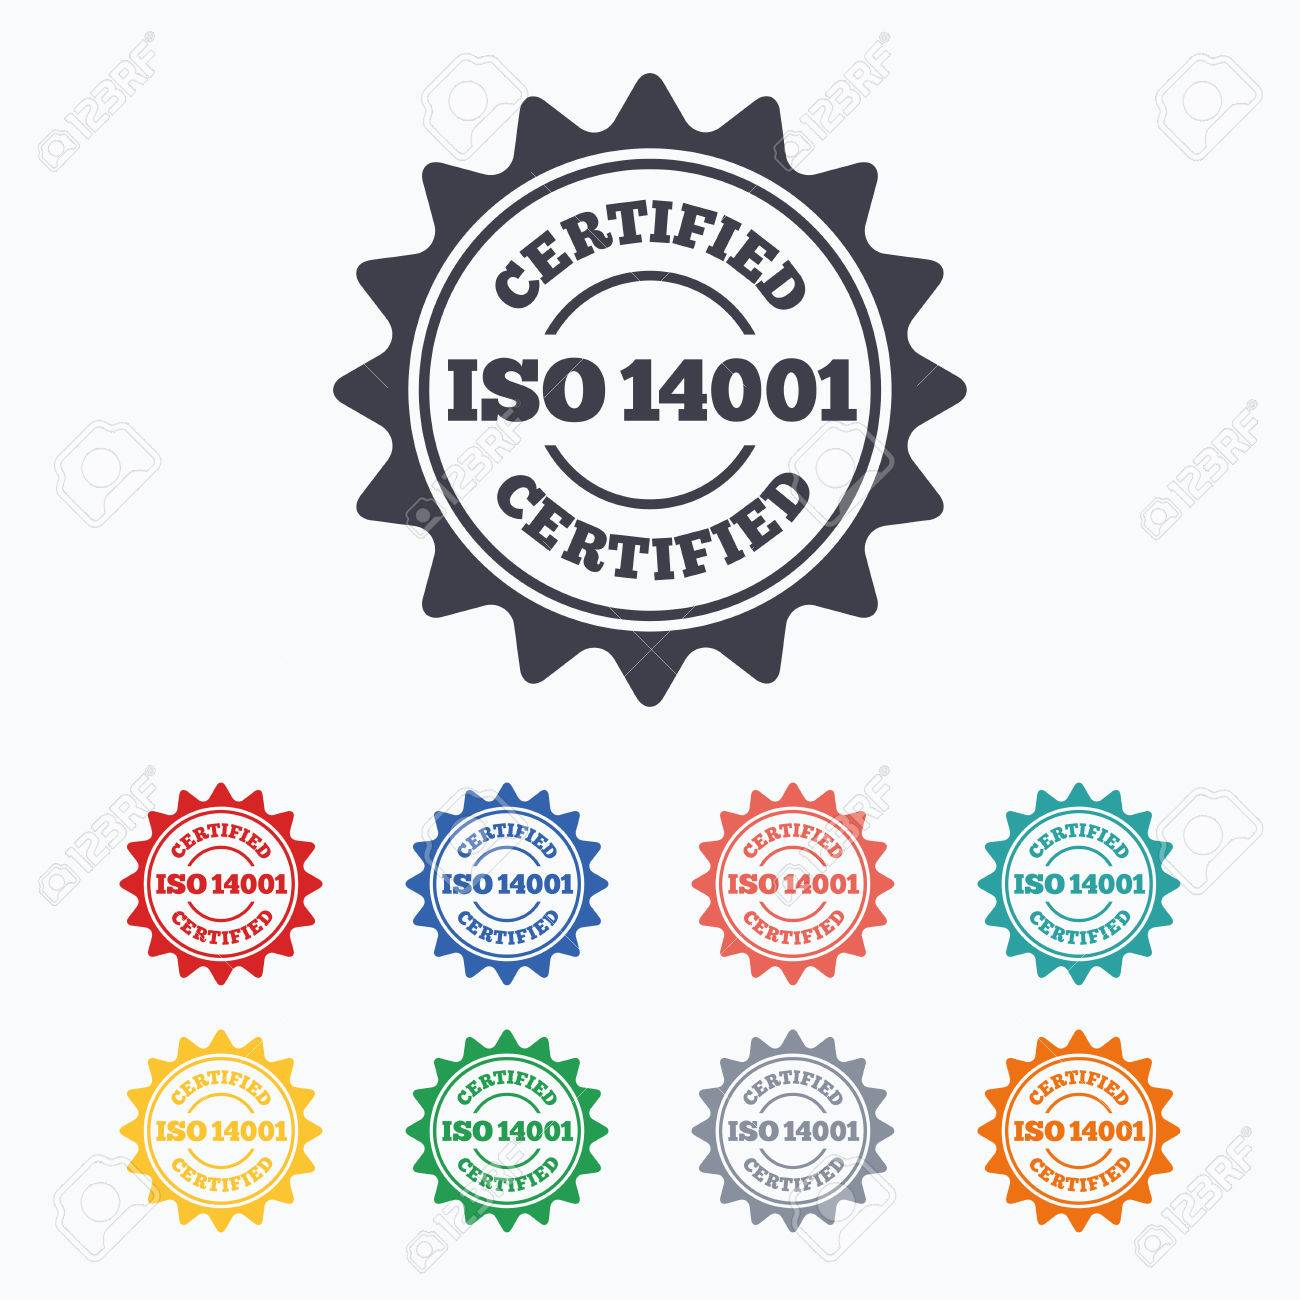 ISO 14001 Certified Sign Icon Certification Star Stamp Colored Flat Icons On White Background